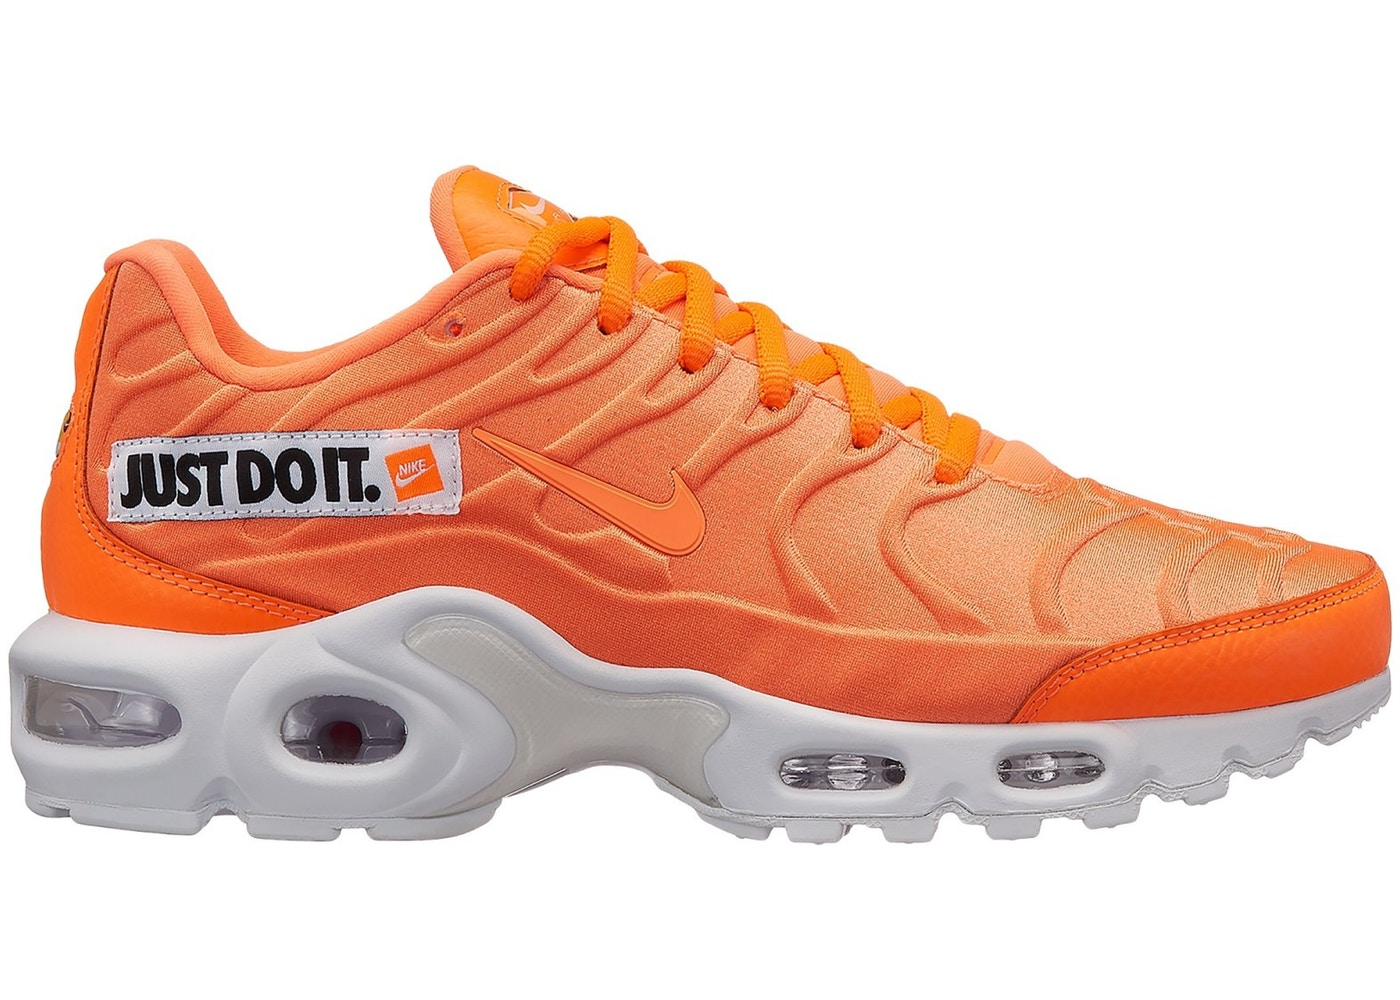 low priced ce3b9 70e2a Air Max Plus Just Do It Pack Orange (W) - 862201-800